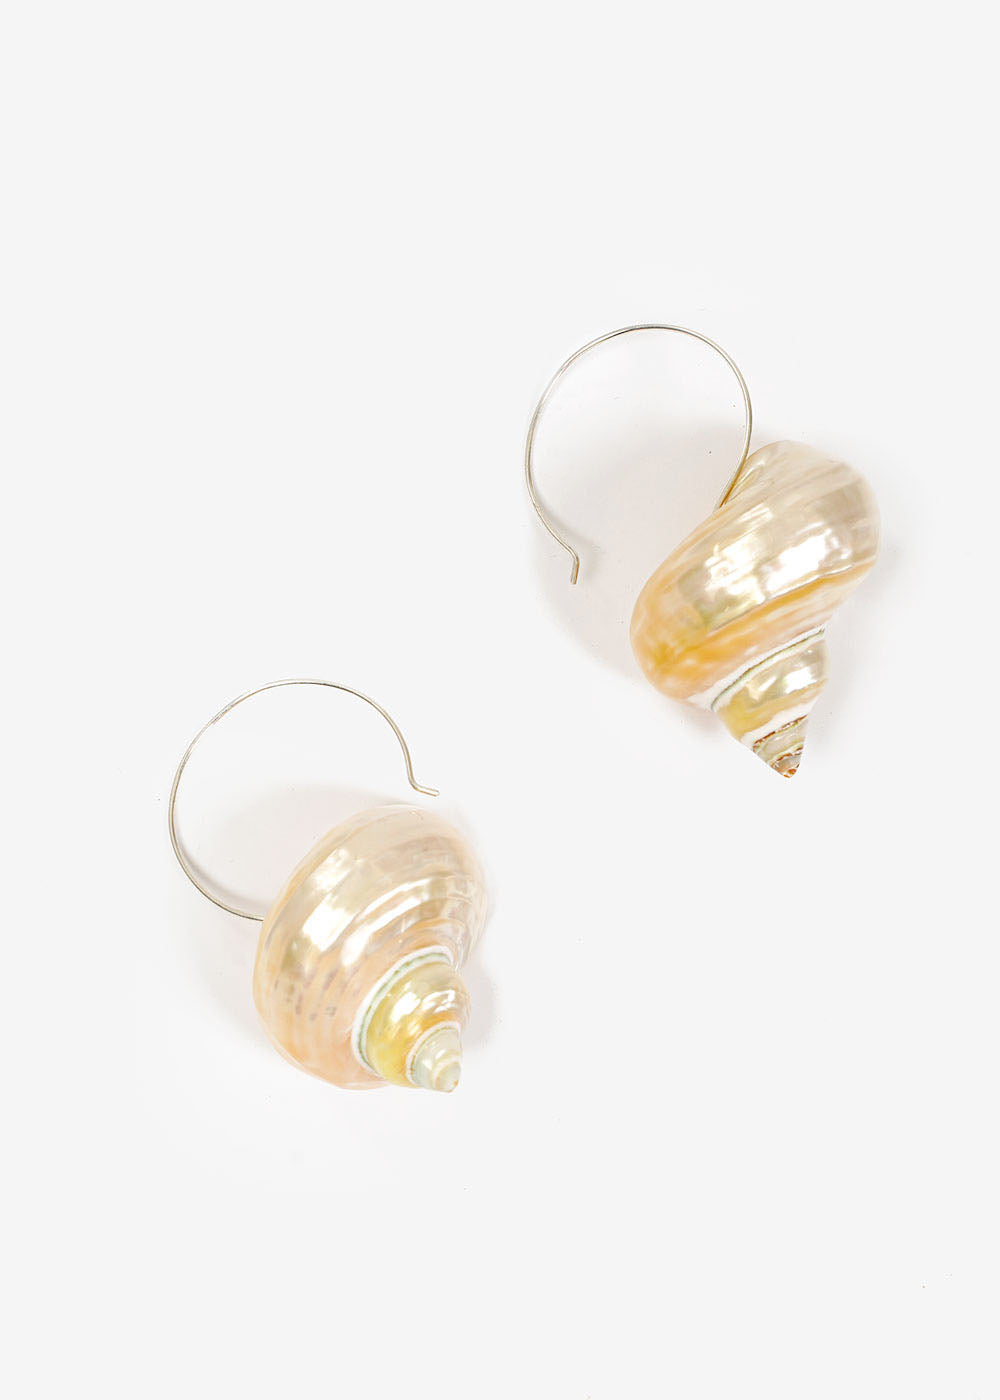 LUINY Turbo Shell Earrings — Shop sustainable fashion and slow fashion at New Classics Studios